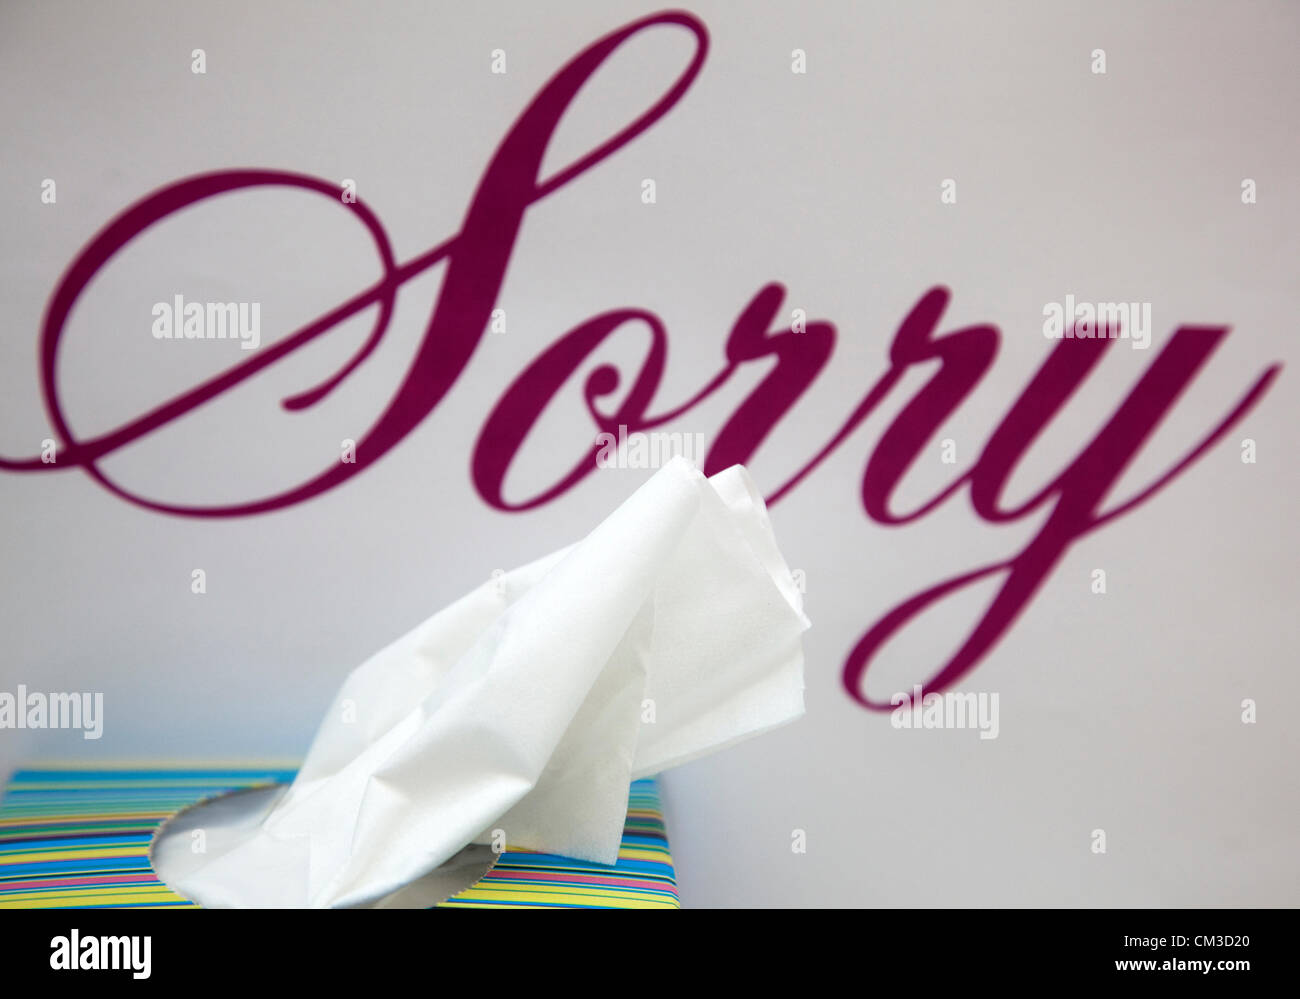 Everyone seems to be apologising these days...  Word 'Sorry' with box of tissues. - Stock Image